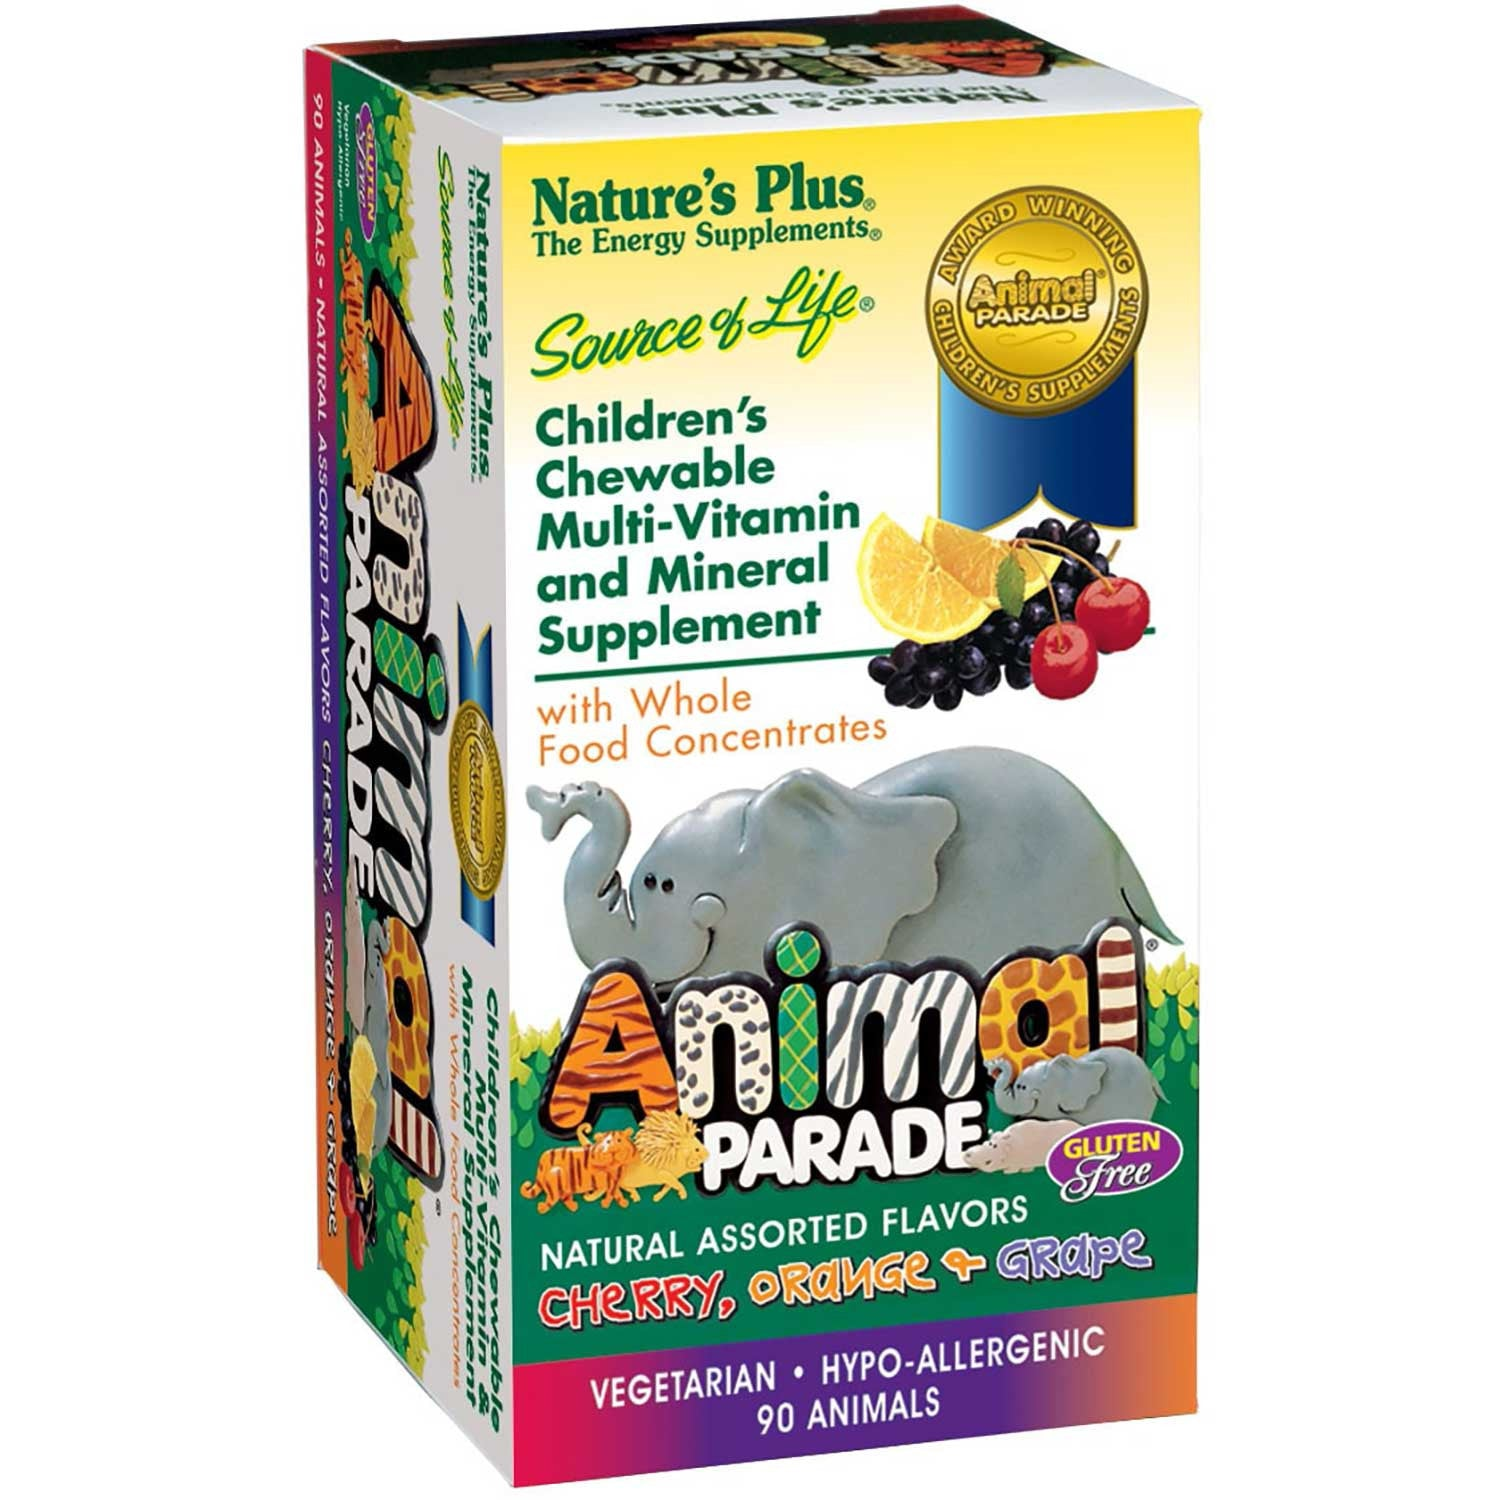 Natures Plus Source of Life Animal Parade Multi-Vitamin & Mineral (Assorted), 90 tabs.